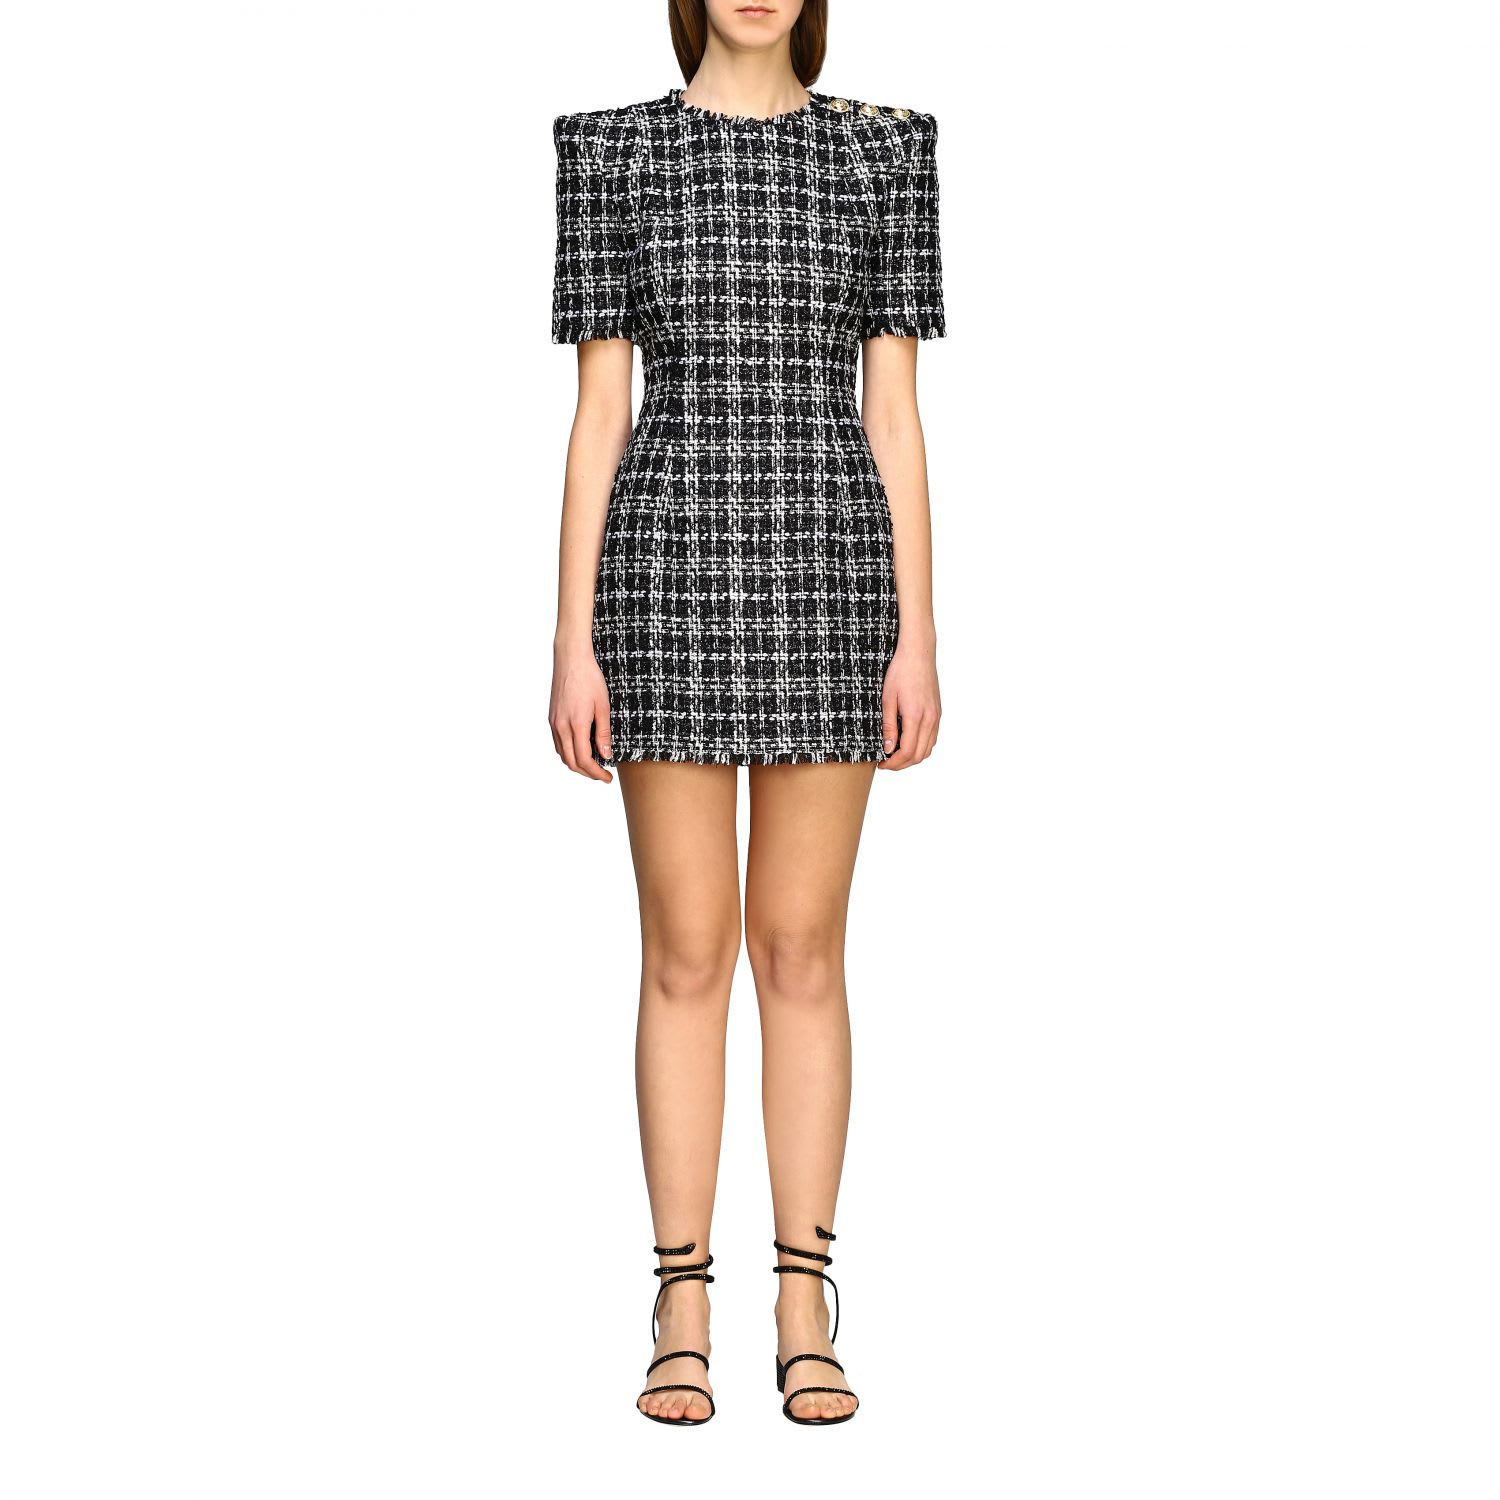 Buy Balmain Dress Balmain Short-sleeved Dress In Lurex Bouclè Fabric With Buttons online, shop Balmain with free shipping